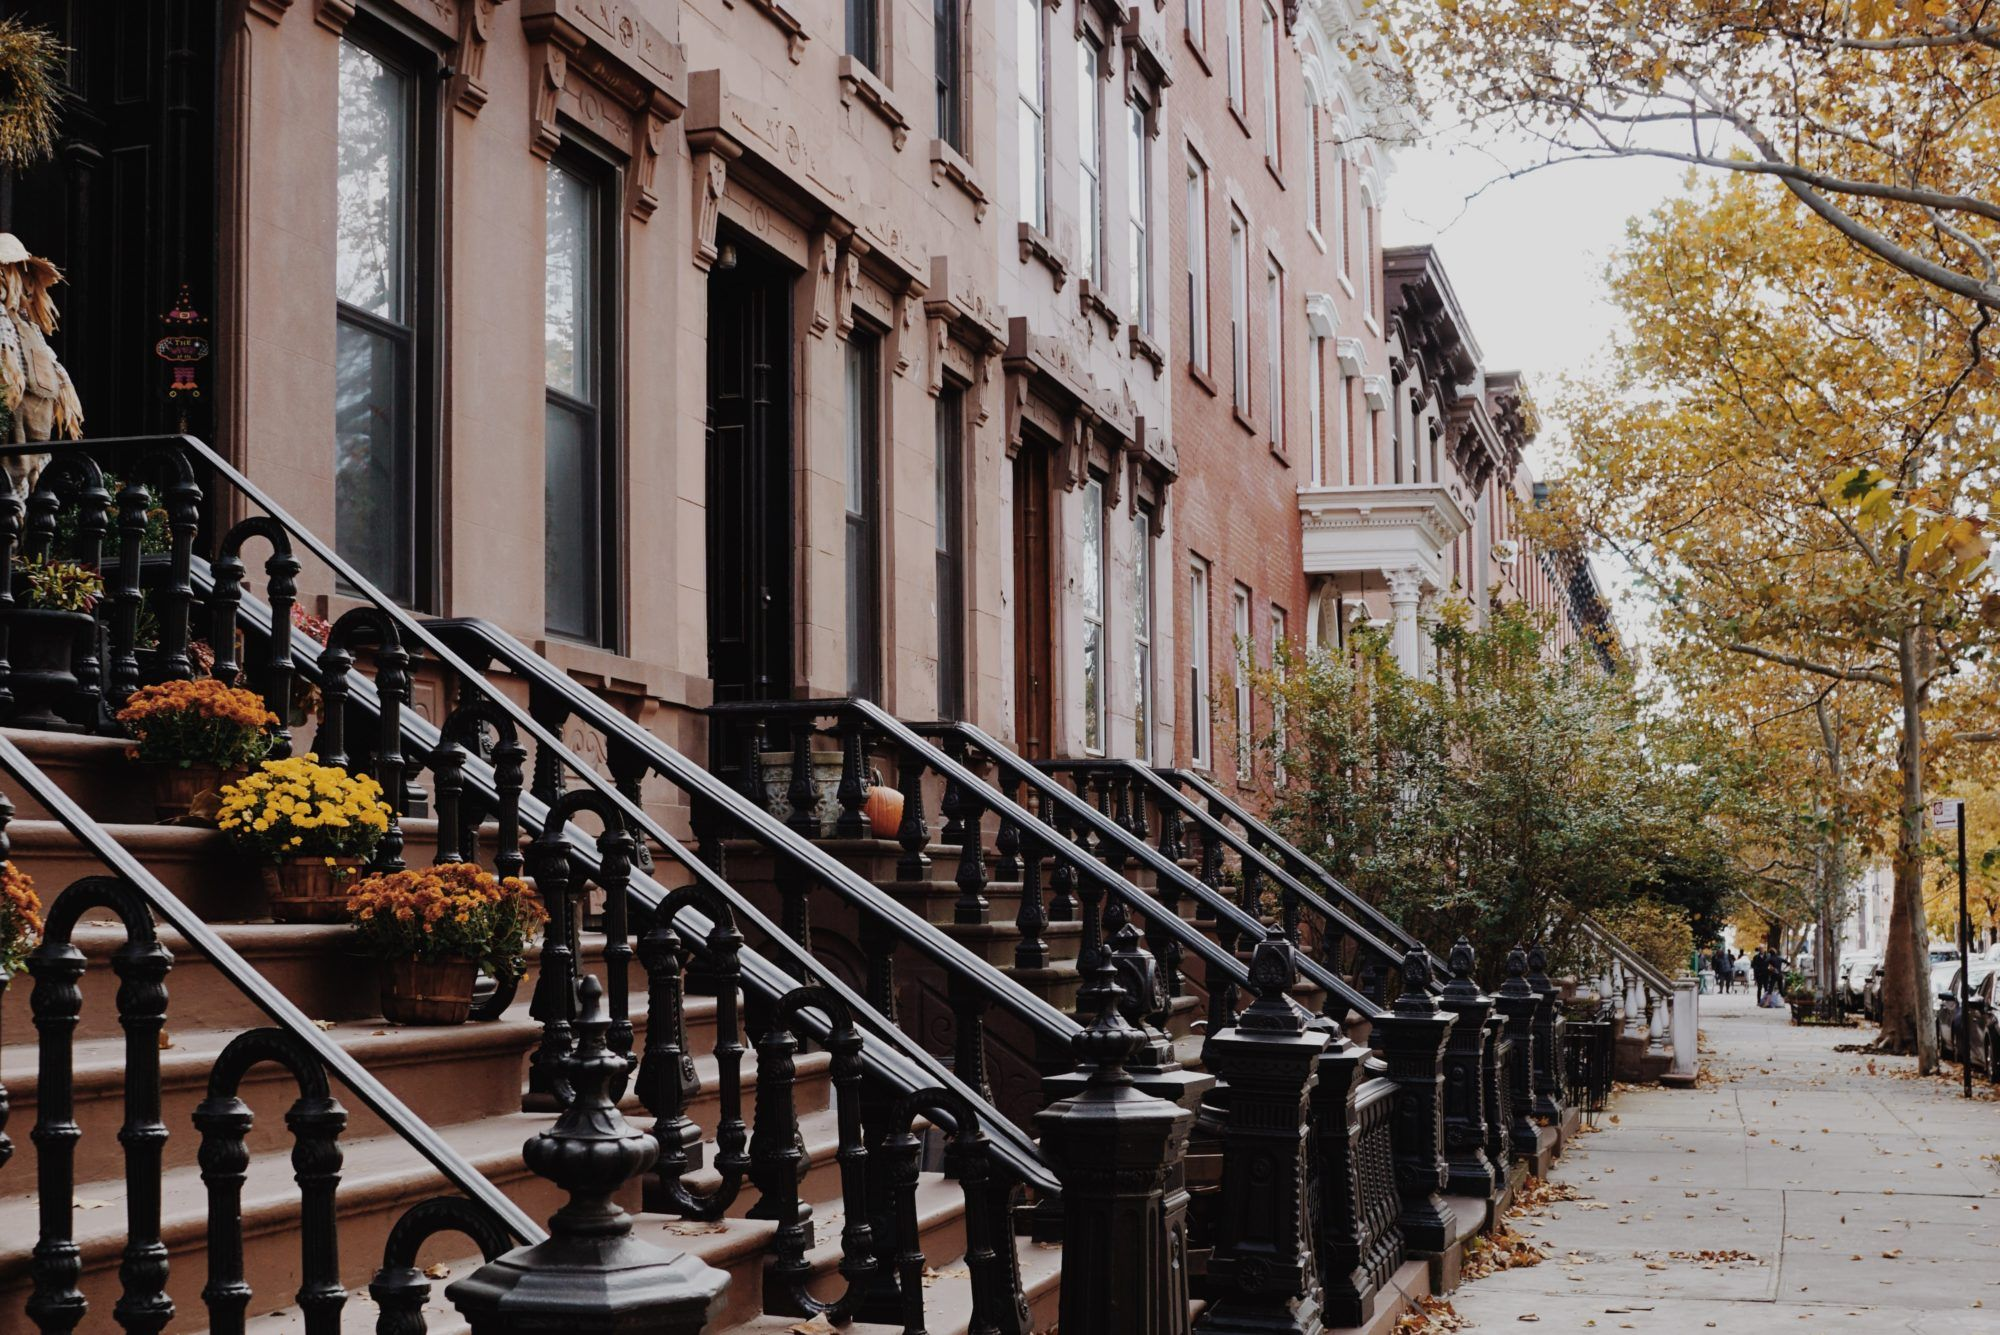 A Vegan Friendly Guide To Nyc S Greenpoint Neighborhood In Brooklyn Highlighting Some Of Its Best Vegan Friendly Spots Coffee Shops Vintage St The Neighbourhood Coffee Shop Vegan Friendly